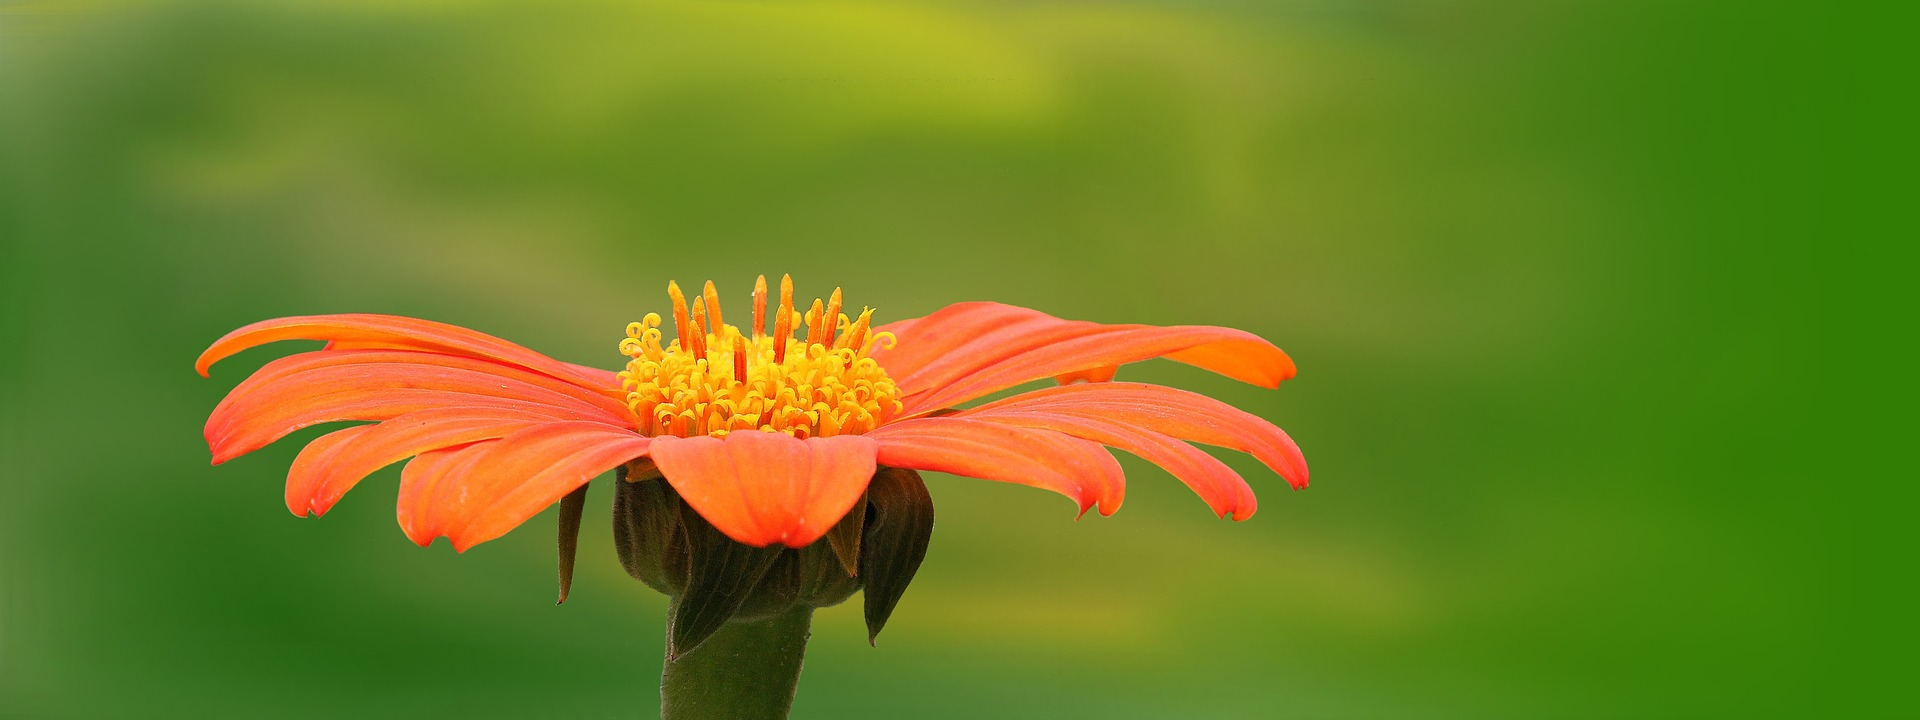 gelbe-orange Blume